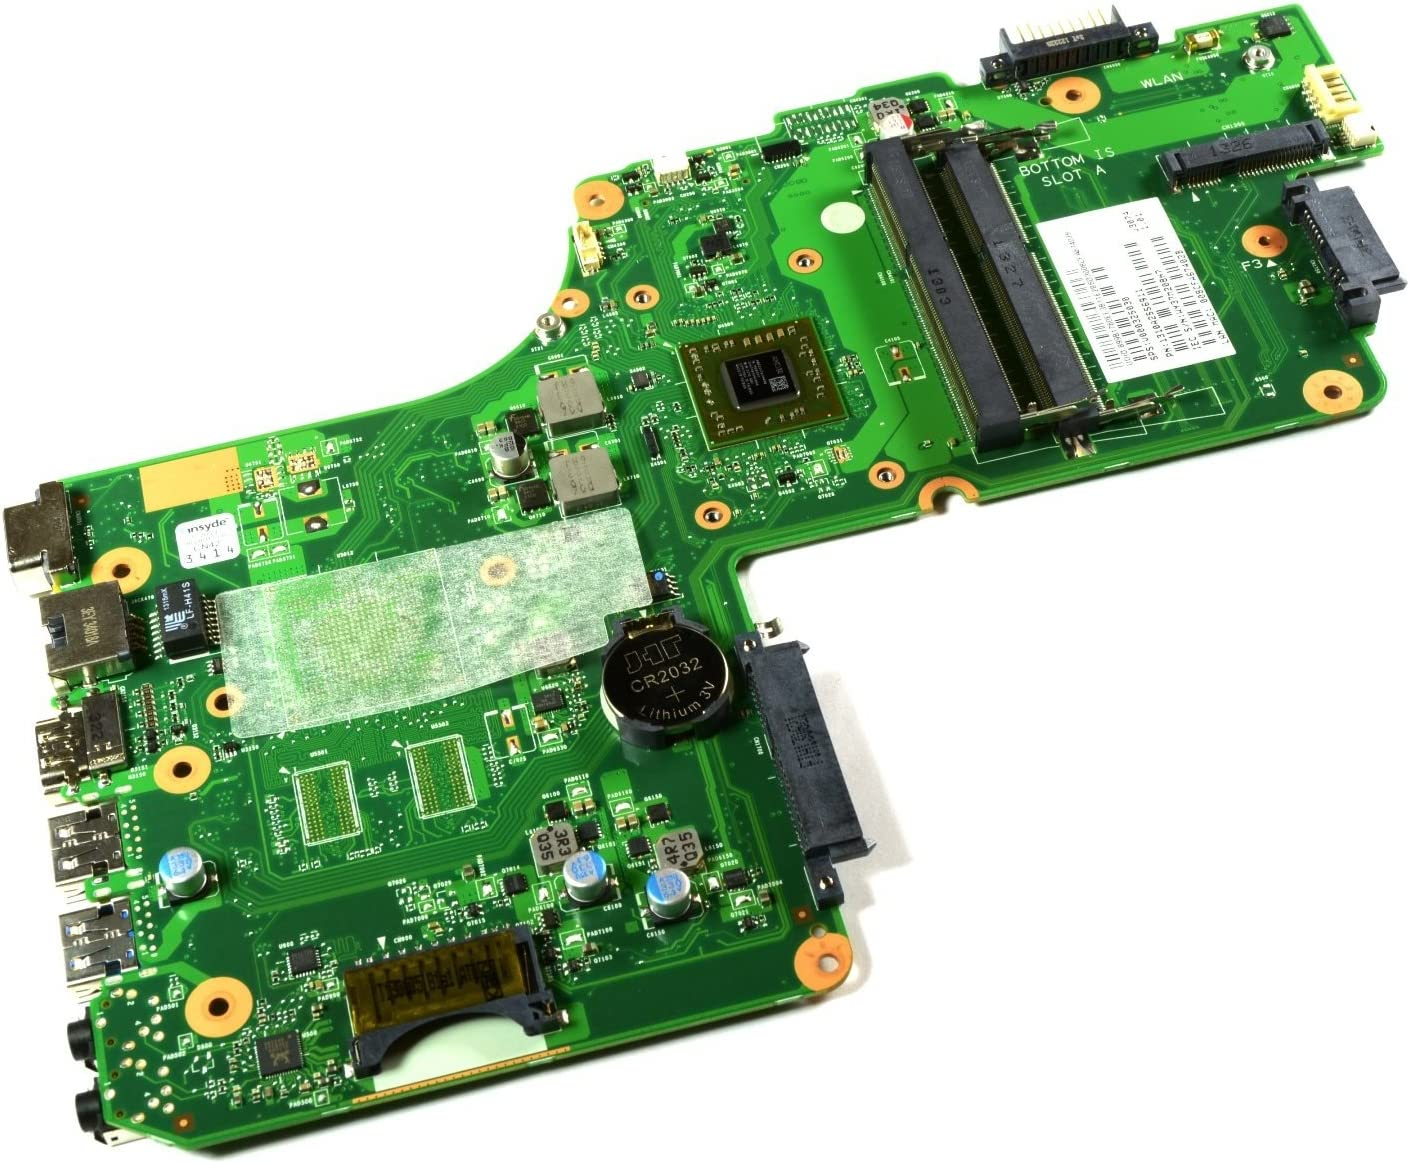 Toshiba Satellite C55D Series AMD Motherboard With A6-5200 CPU V000325030